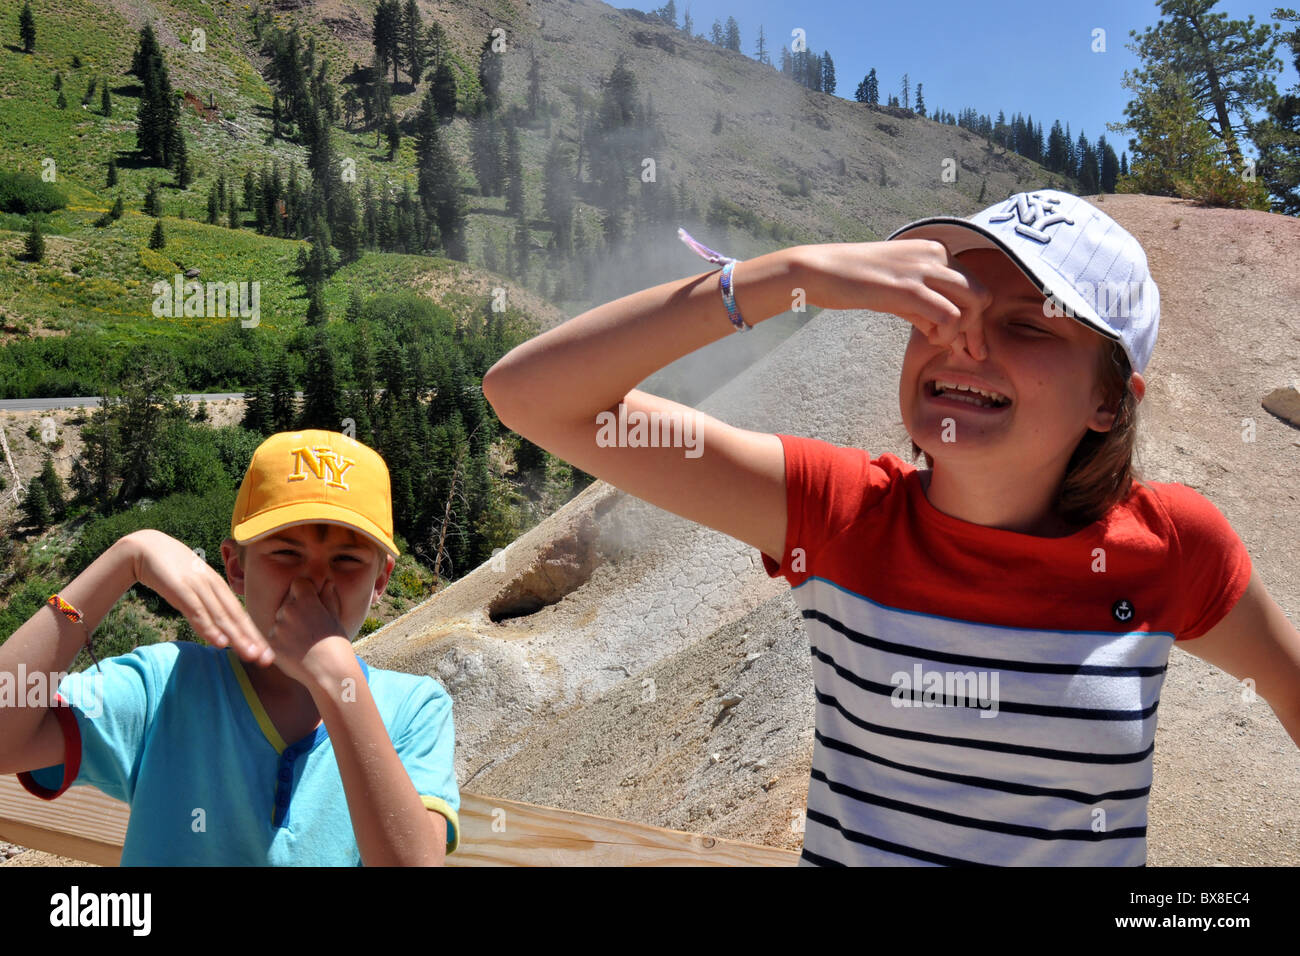 A boy and girl don't like the sulphuric smell in the Volcanic park at Mount Lassen National Park, California, - Stock Image